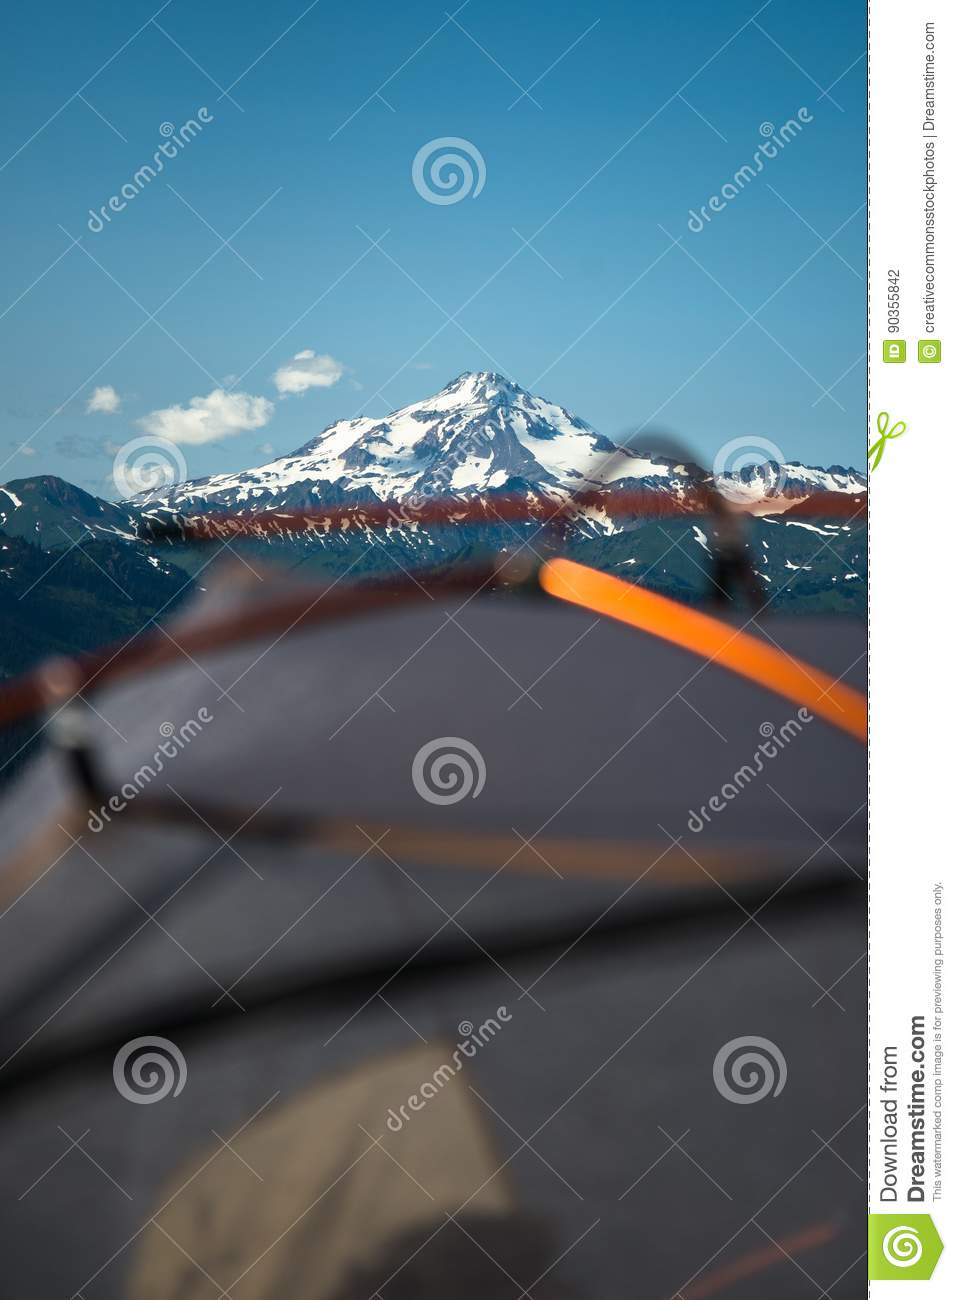 Download Camping at mountains stock photo. Image of skies, weather - 90355842